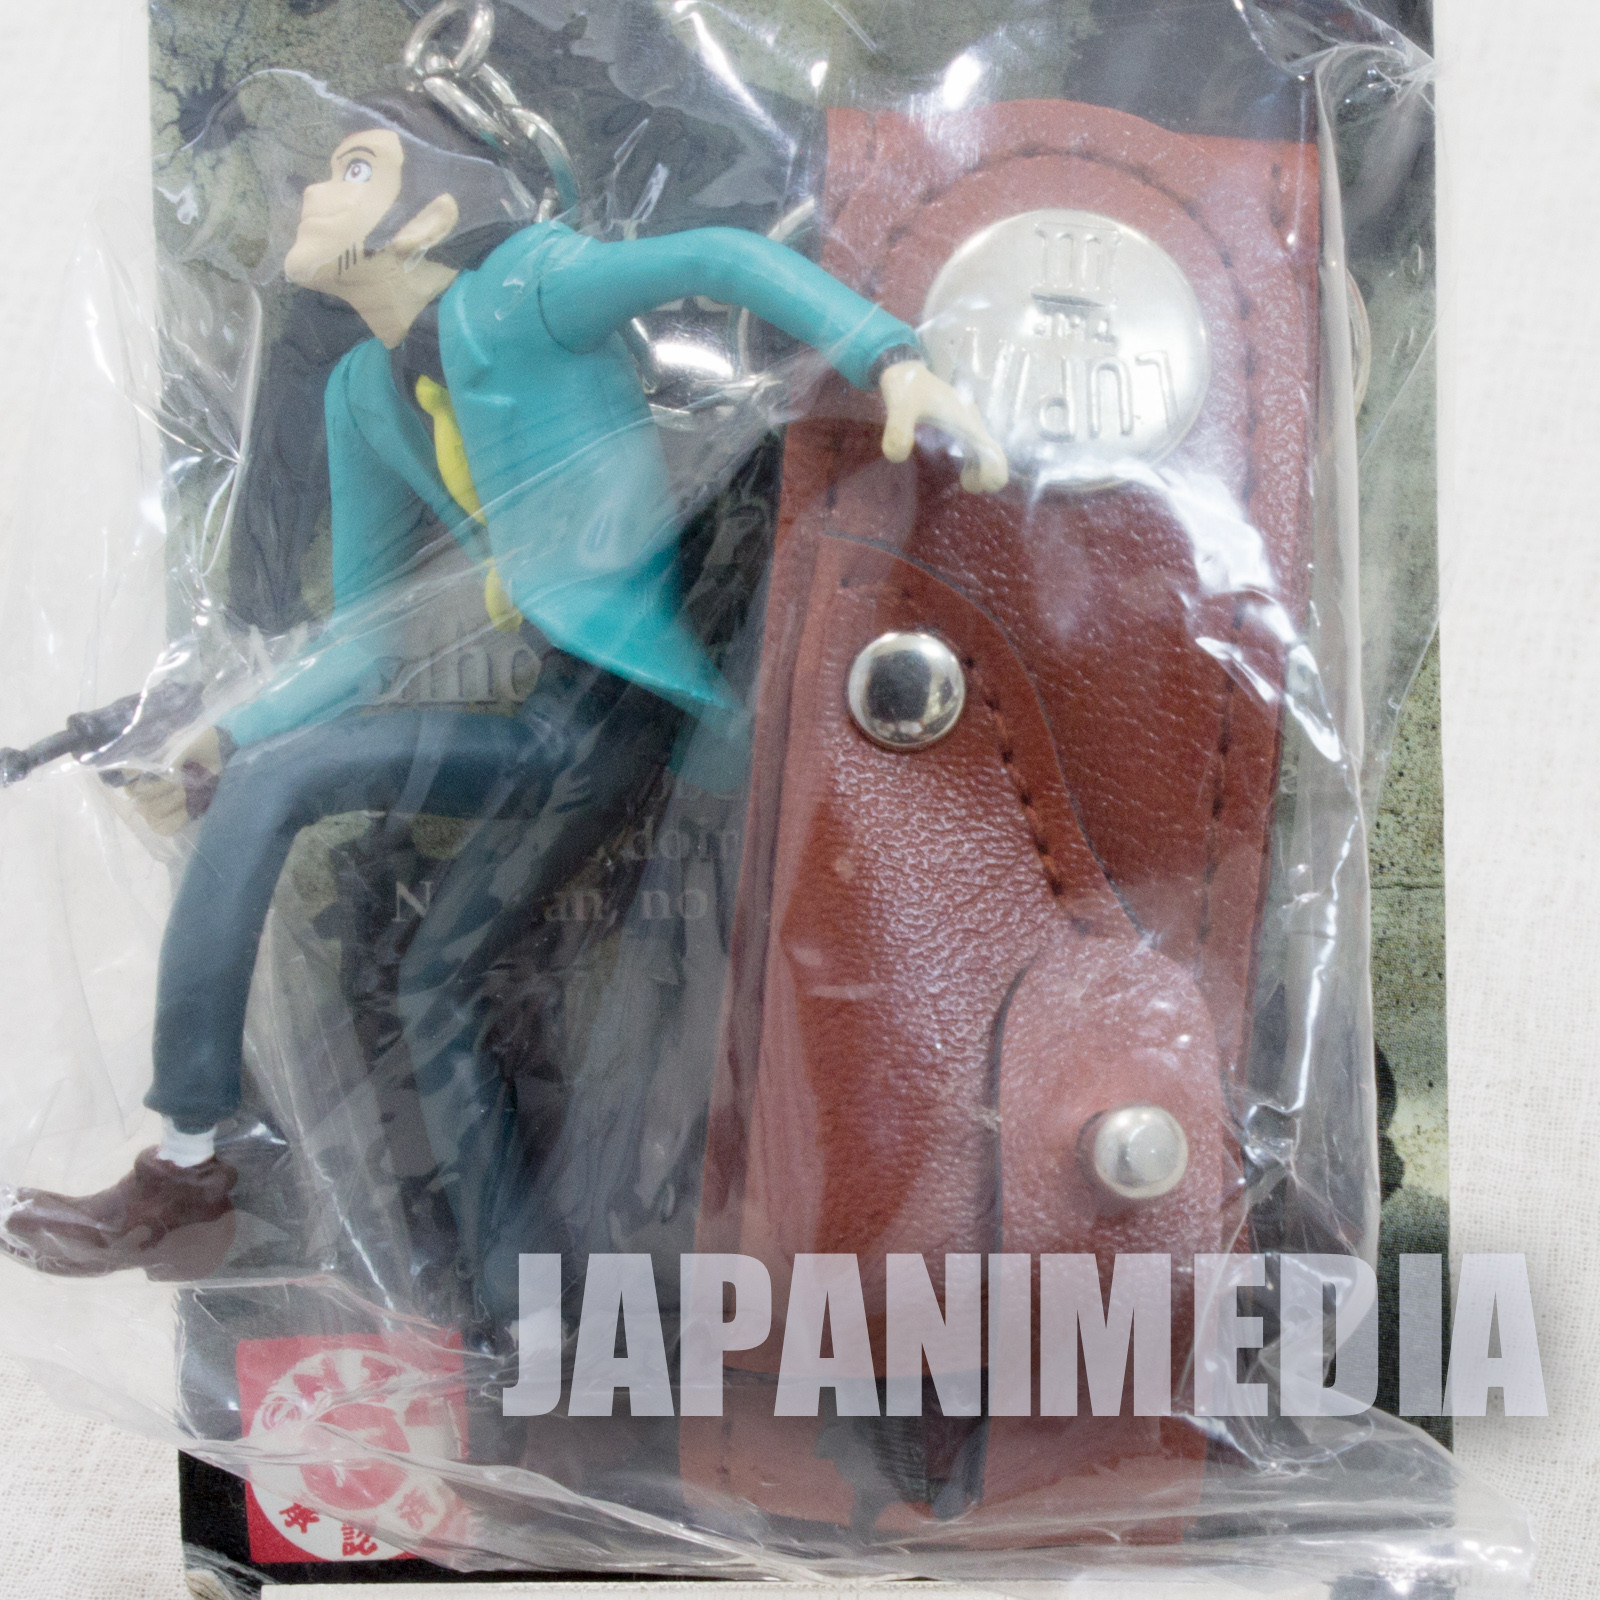 Lupin the Third (3rd) LUPIN Figure Holster Belt Strap Banpresto JAPAN